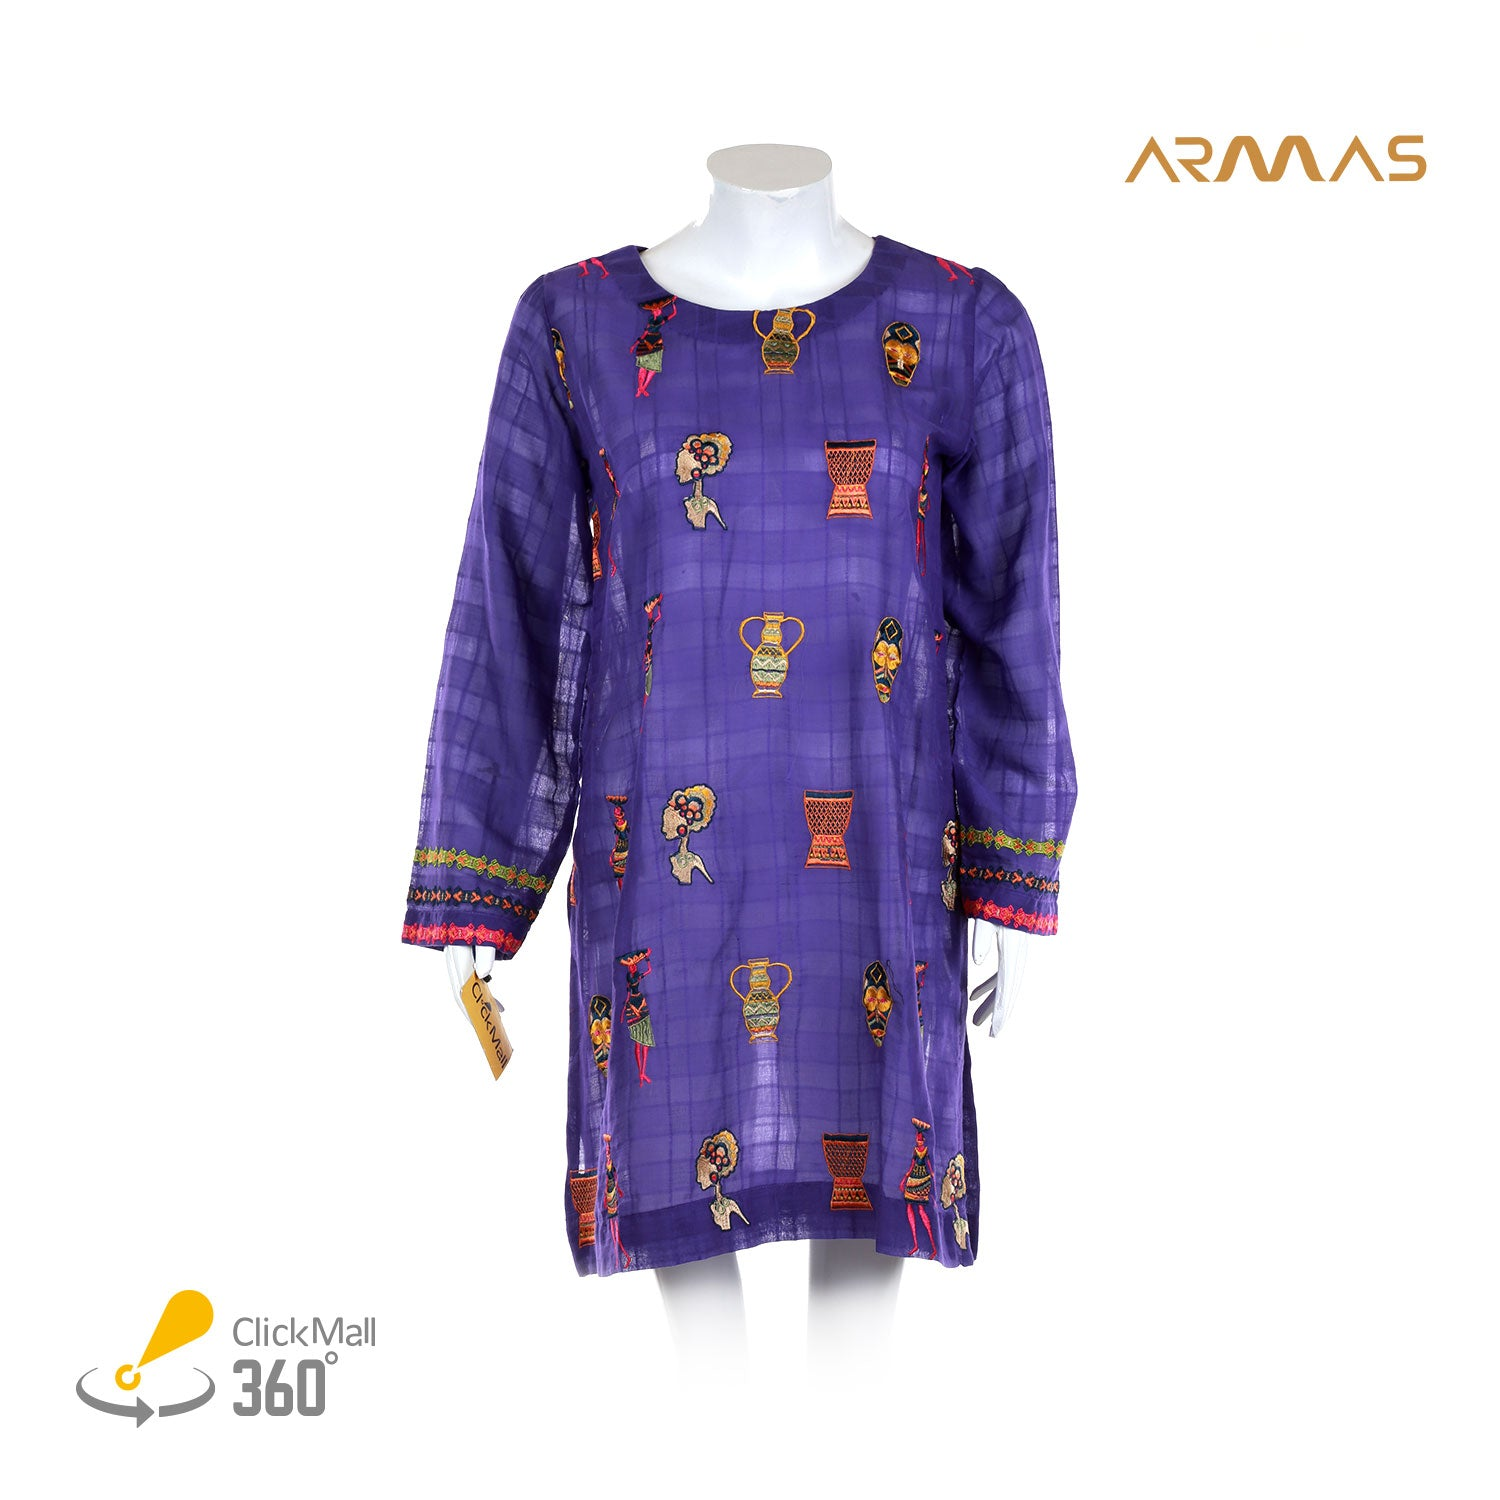 Armas African Art Lawn Shirt - ARE-ESL-055A